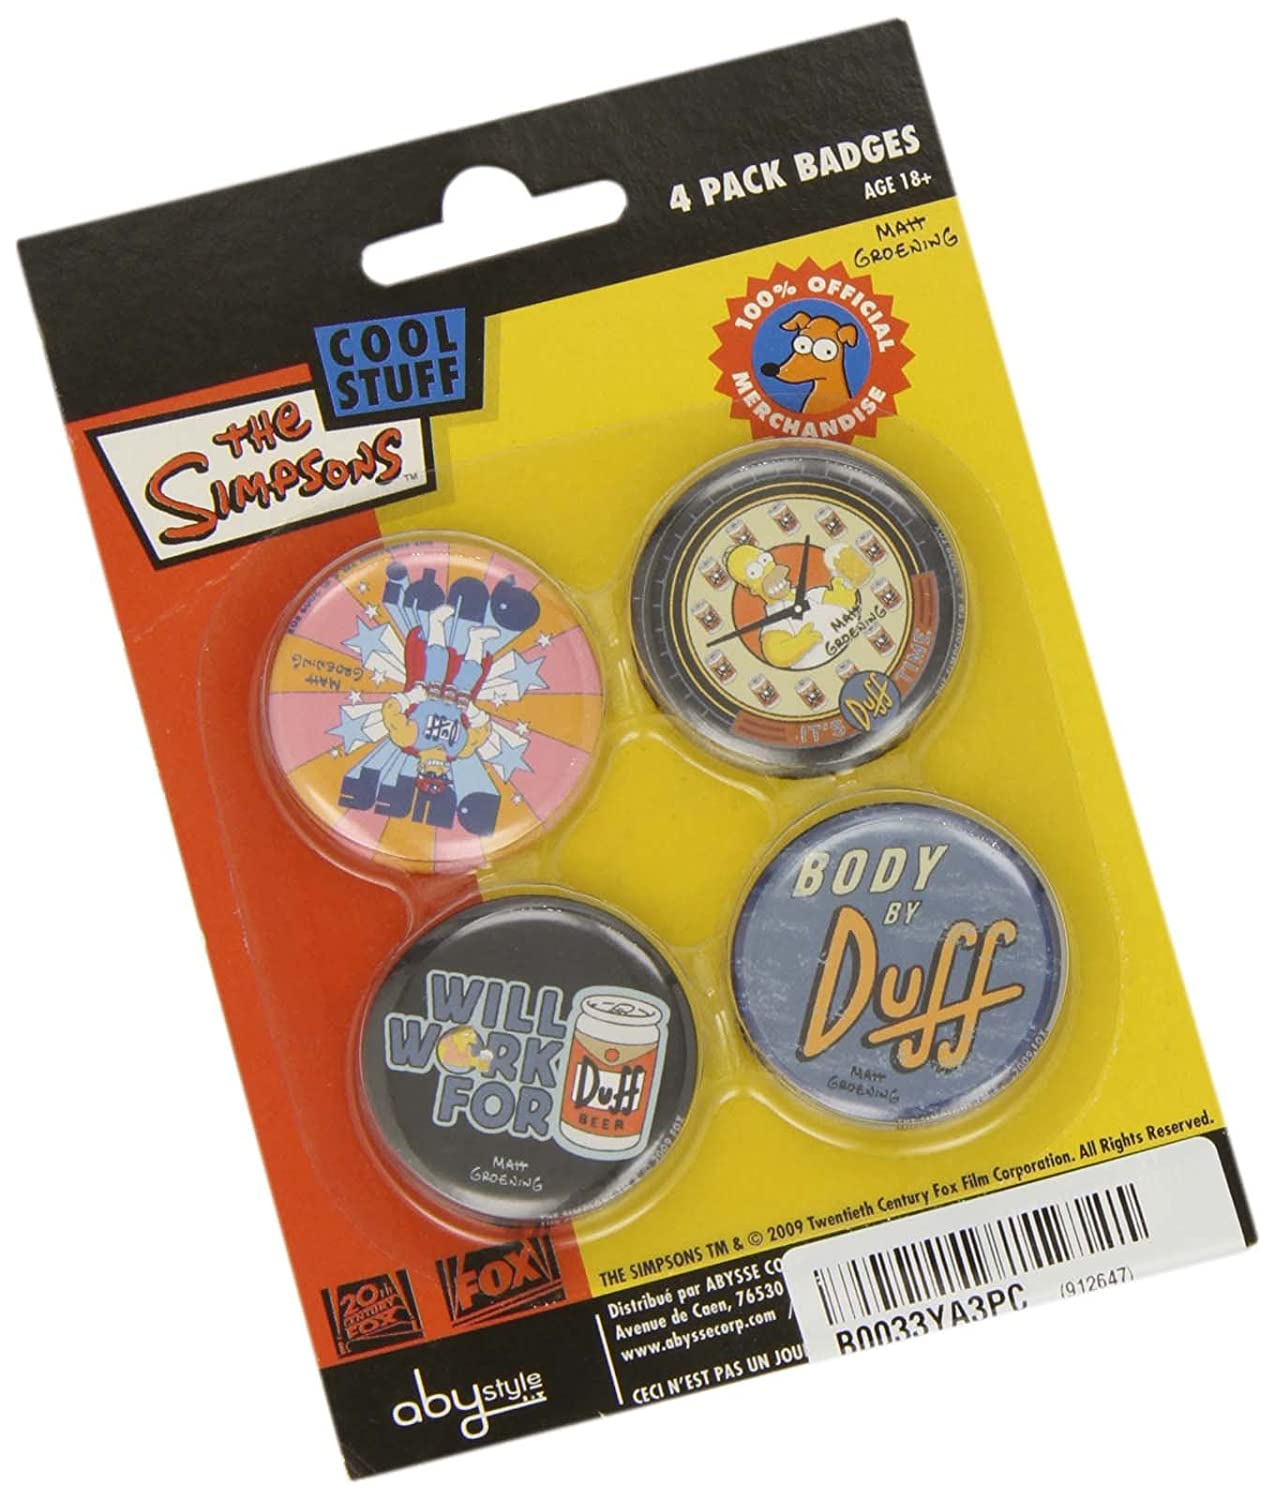 The Simpsons cool stuff 4 pack badges spille AbyStyle ABYACC051